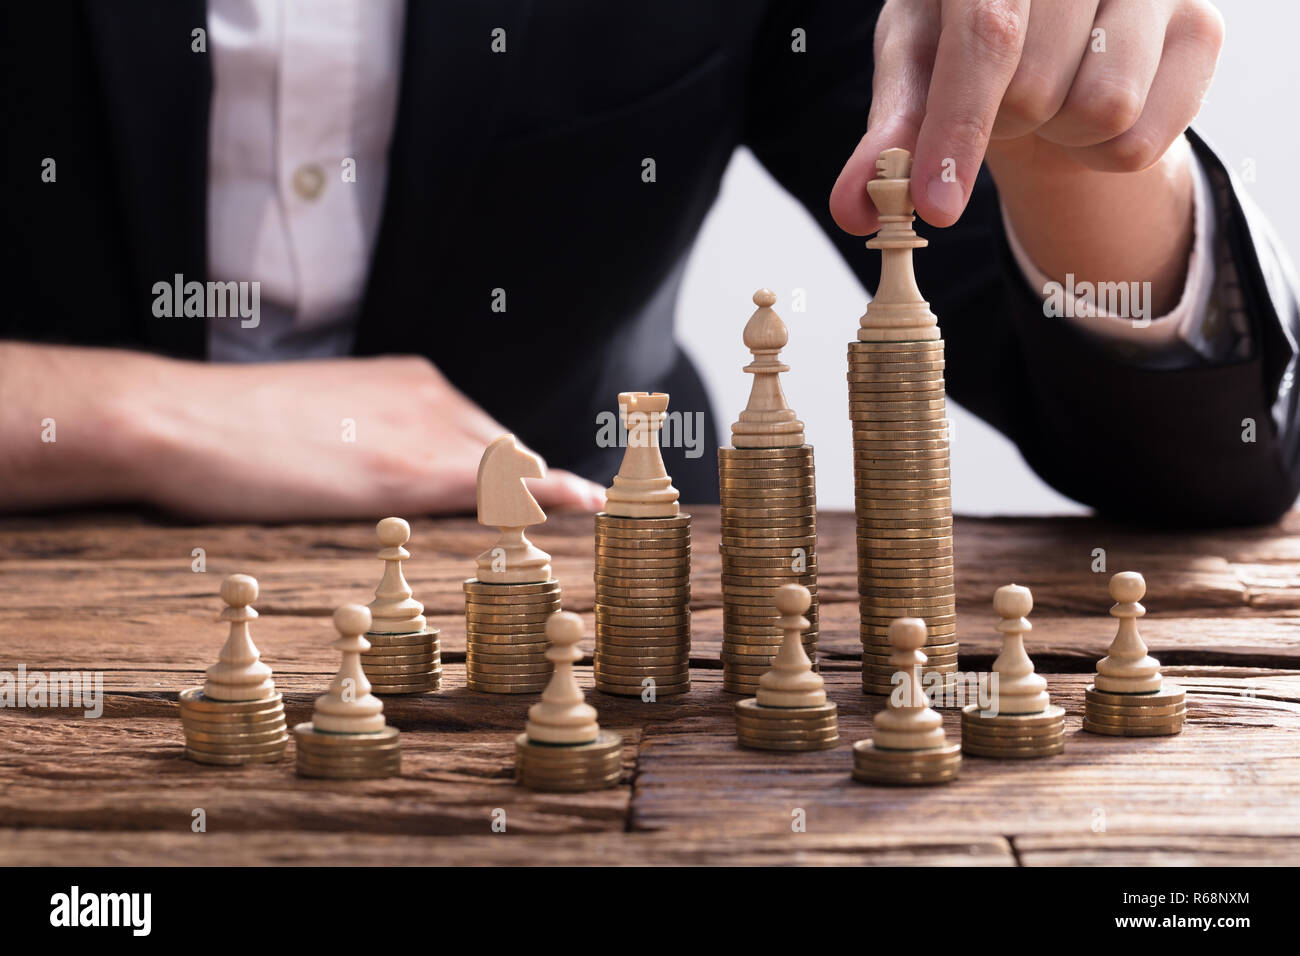 Businessperson Arranging Chess Piece On Stacked Coins - Stock Image